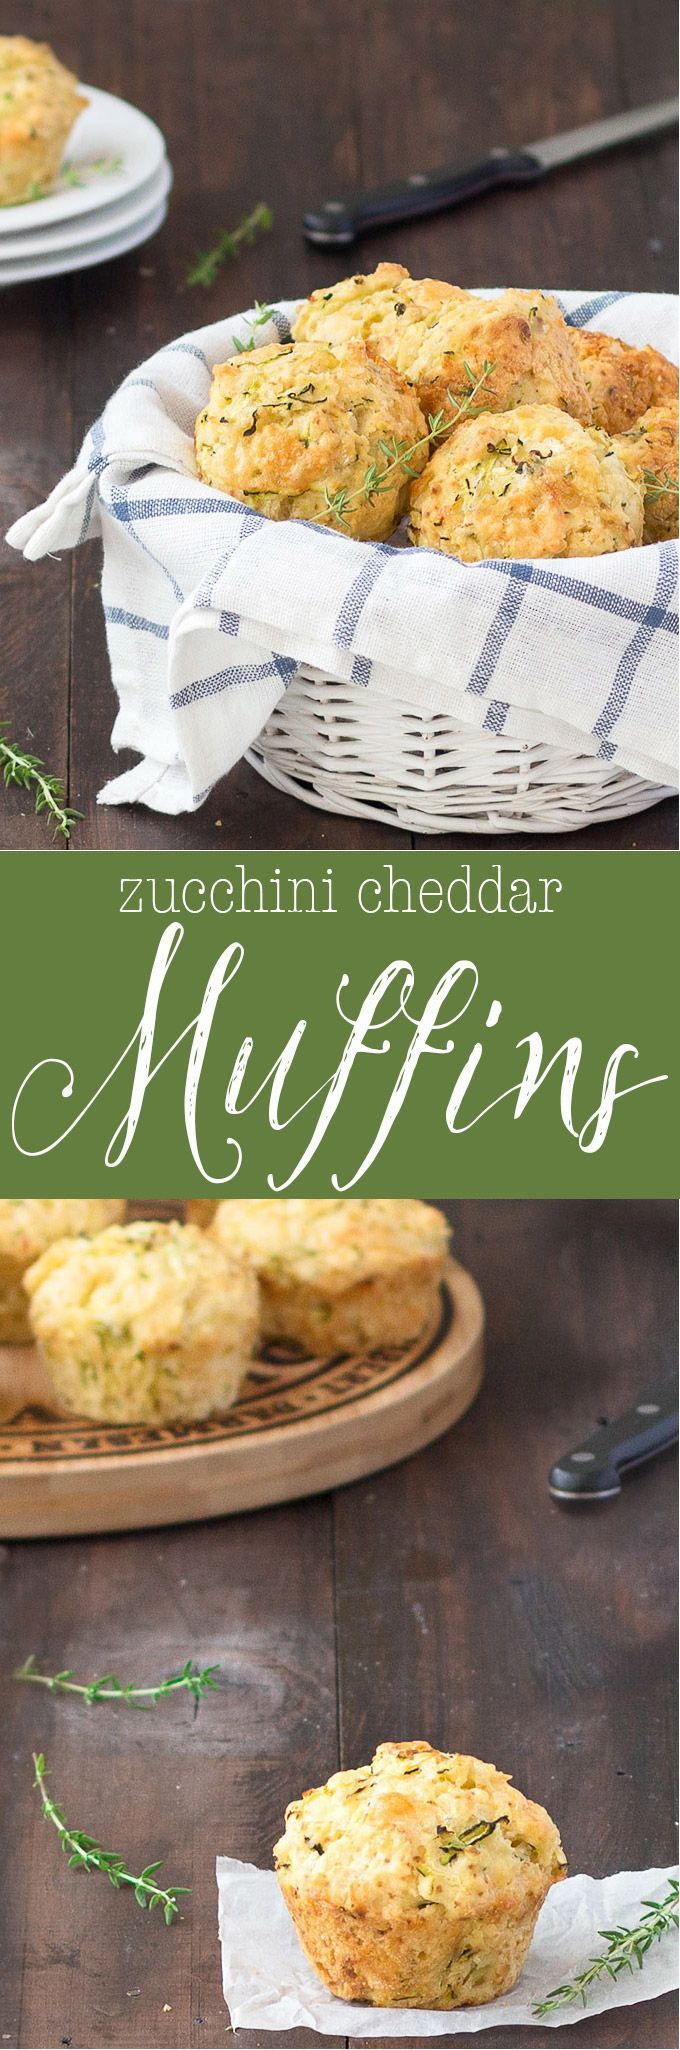 Zucchini Cheddar Cheese Savory Muffins These zucchini cheddar cheese savory muffins are super delicious, moist and full of flavor. Serve them for a quick lunch with a salad, with a bowl of soup, for breakfast, and are great for the kids lunch boxes. Cheddar Cheese Savory Muffins These zucchini cheddar cheese savory muffins are super delicious, moist and full of flavor. Serve them for a quick lunch with a salad, with a bowl of soup, for breakfast, and are great for the kids lunch boxes.These zucchini cheddar cheese savory muffins are super delicious, moist and full of flavor. Serve them for a quic...